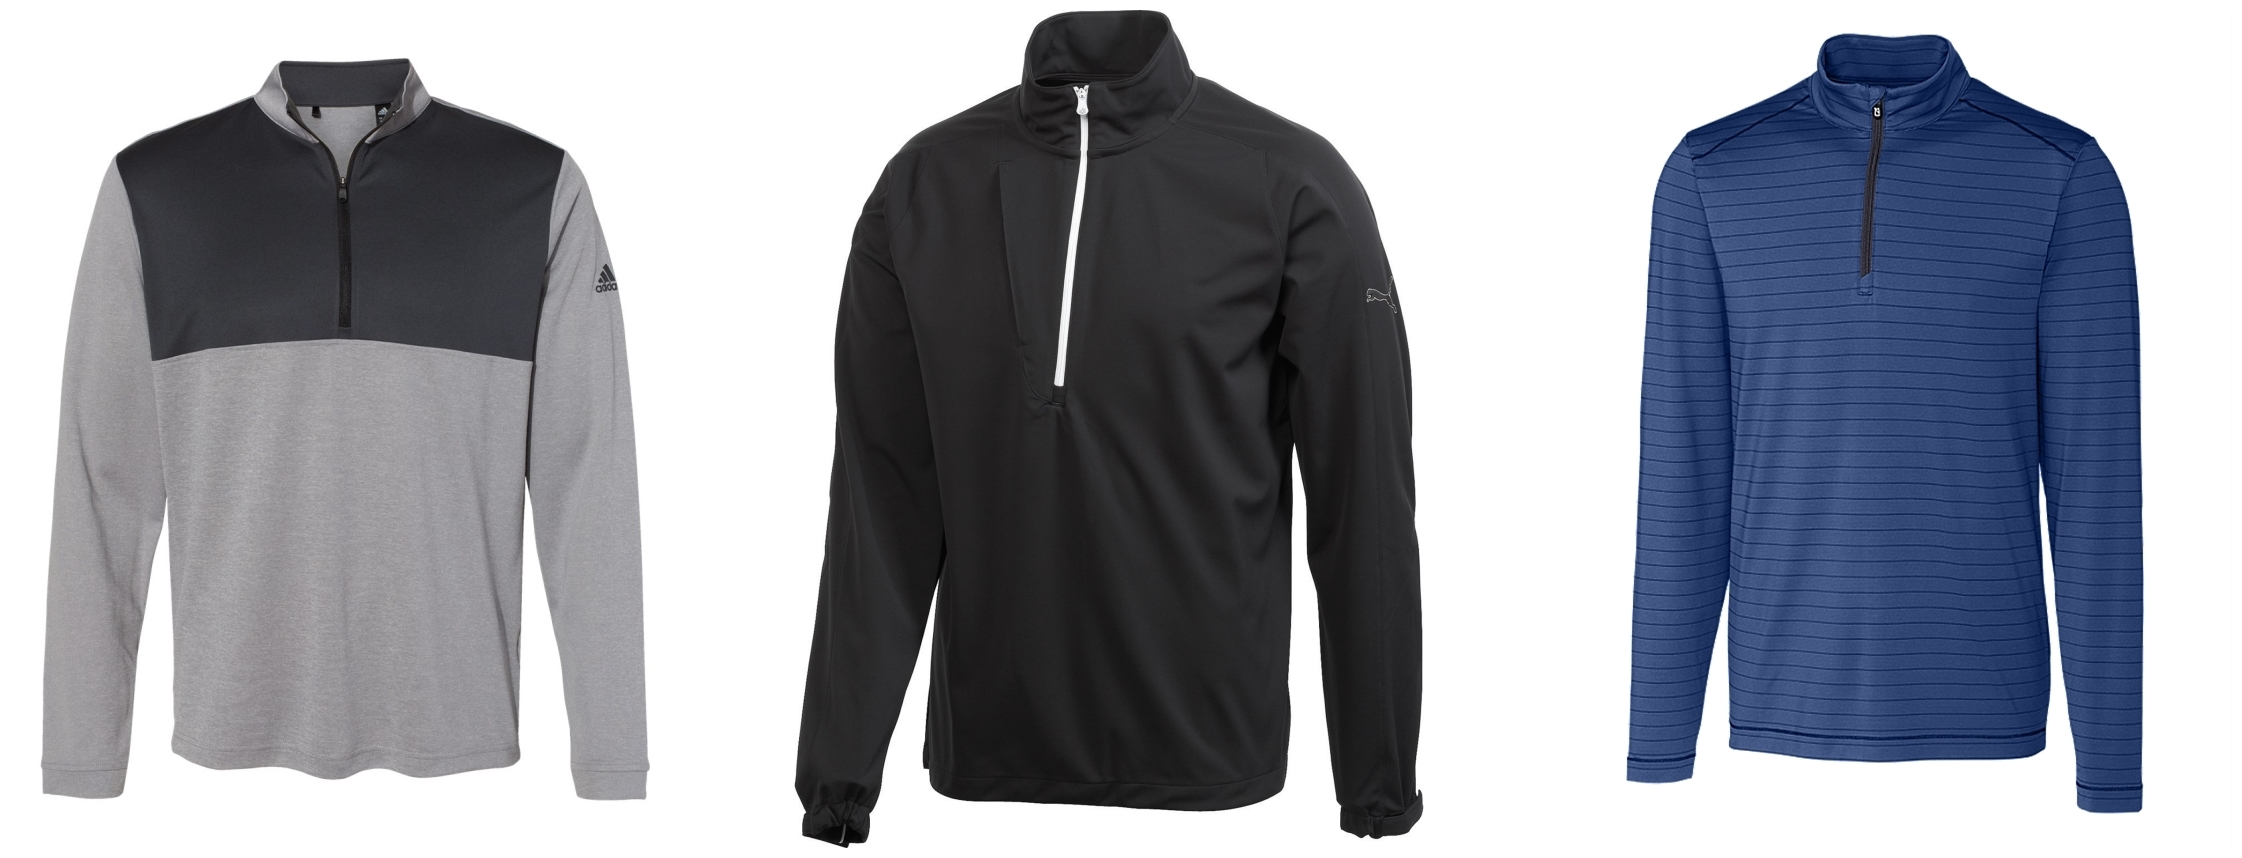 Performance Golf Pullovers from NYFifth